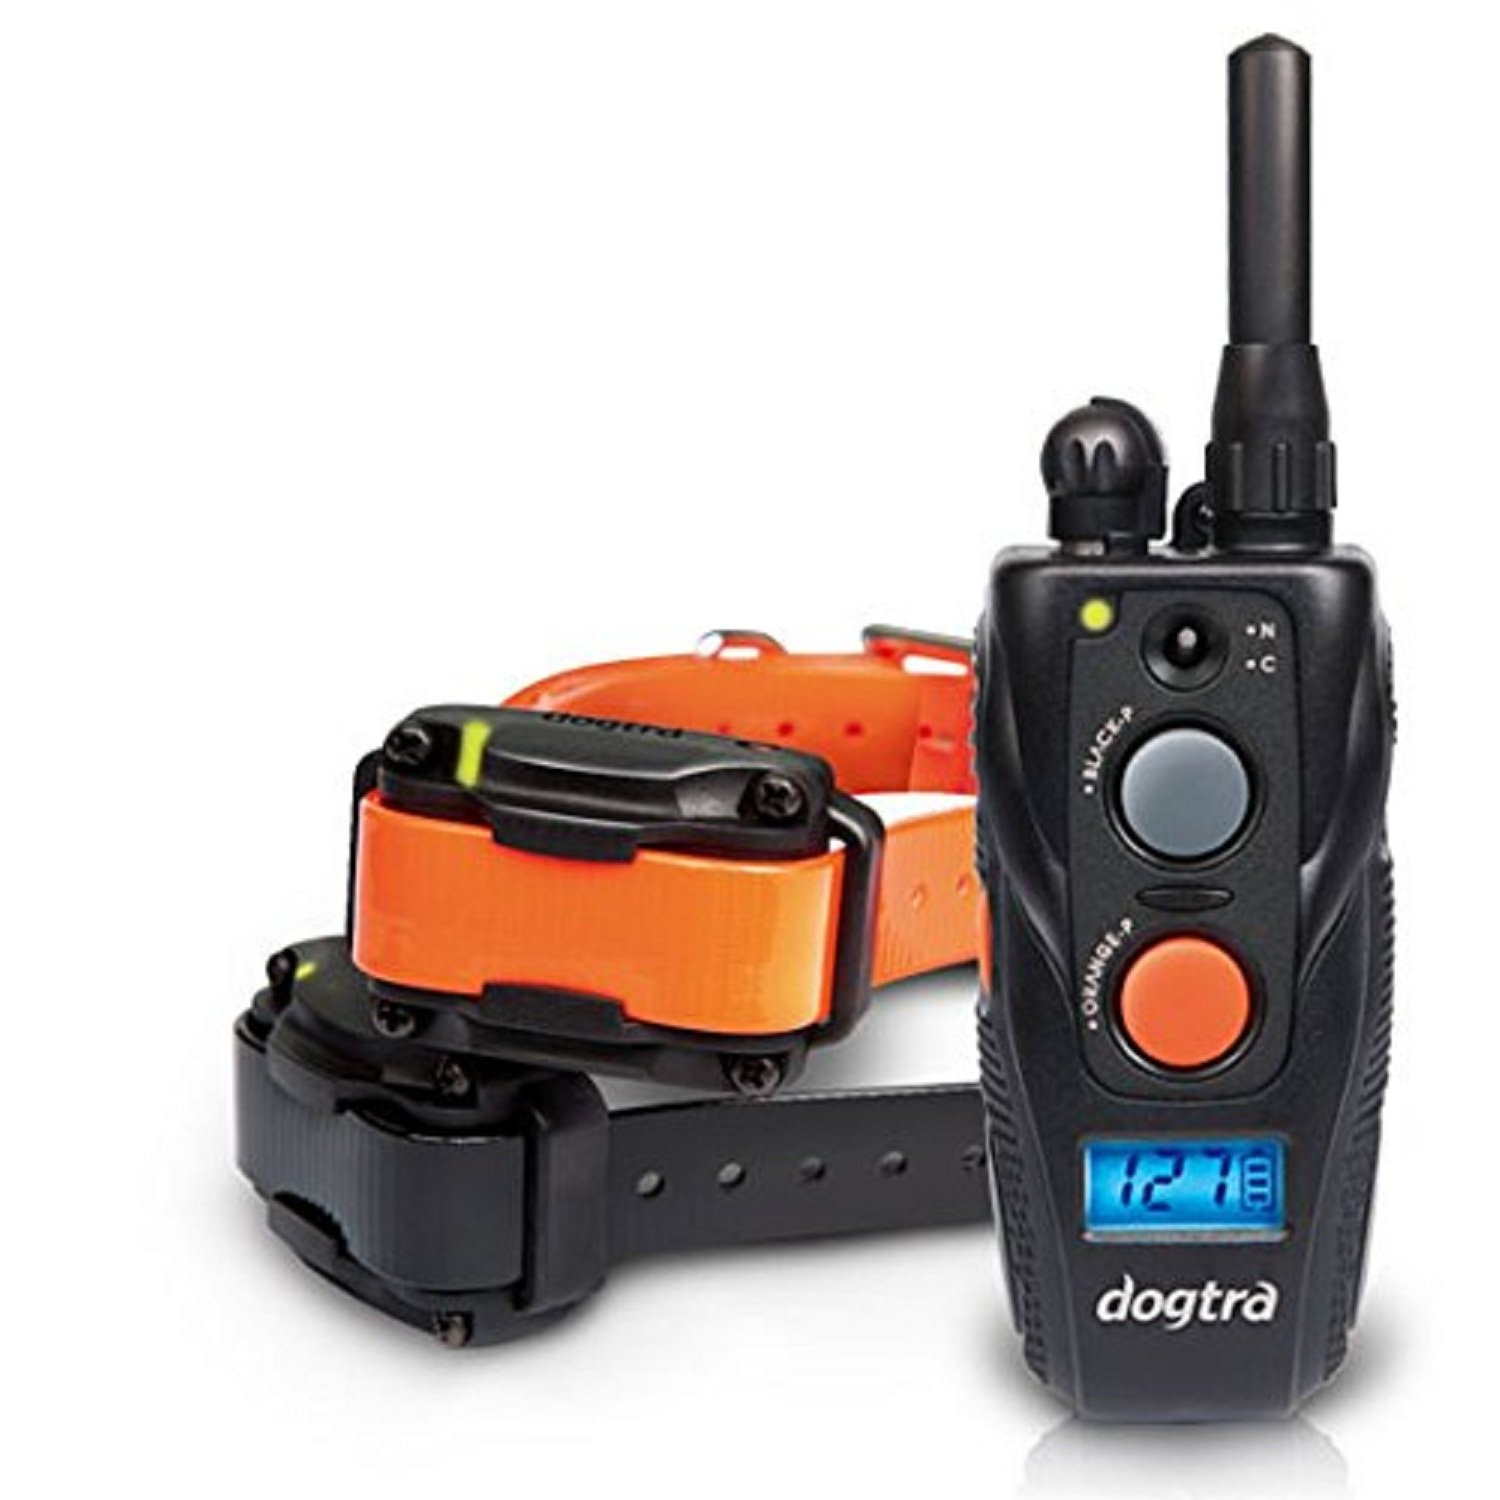 Dogtra 282C 1/2 Mile 2 Dog Compact Remote Training Collar System